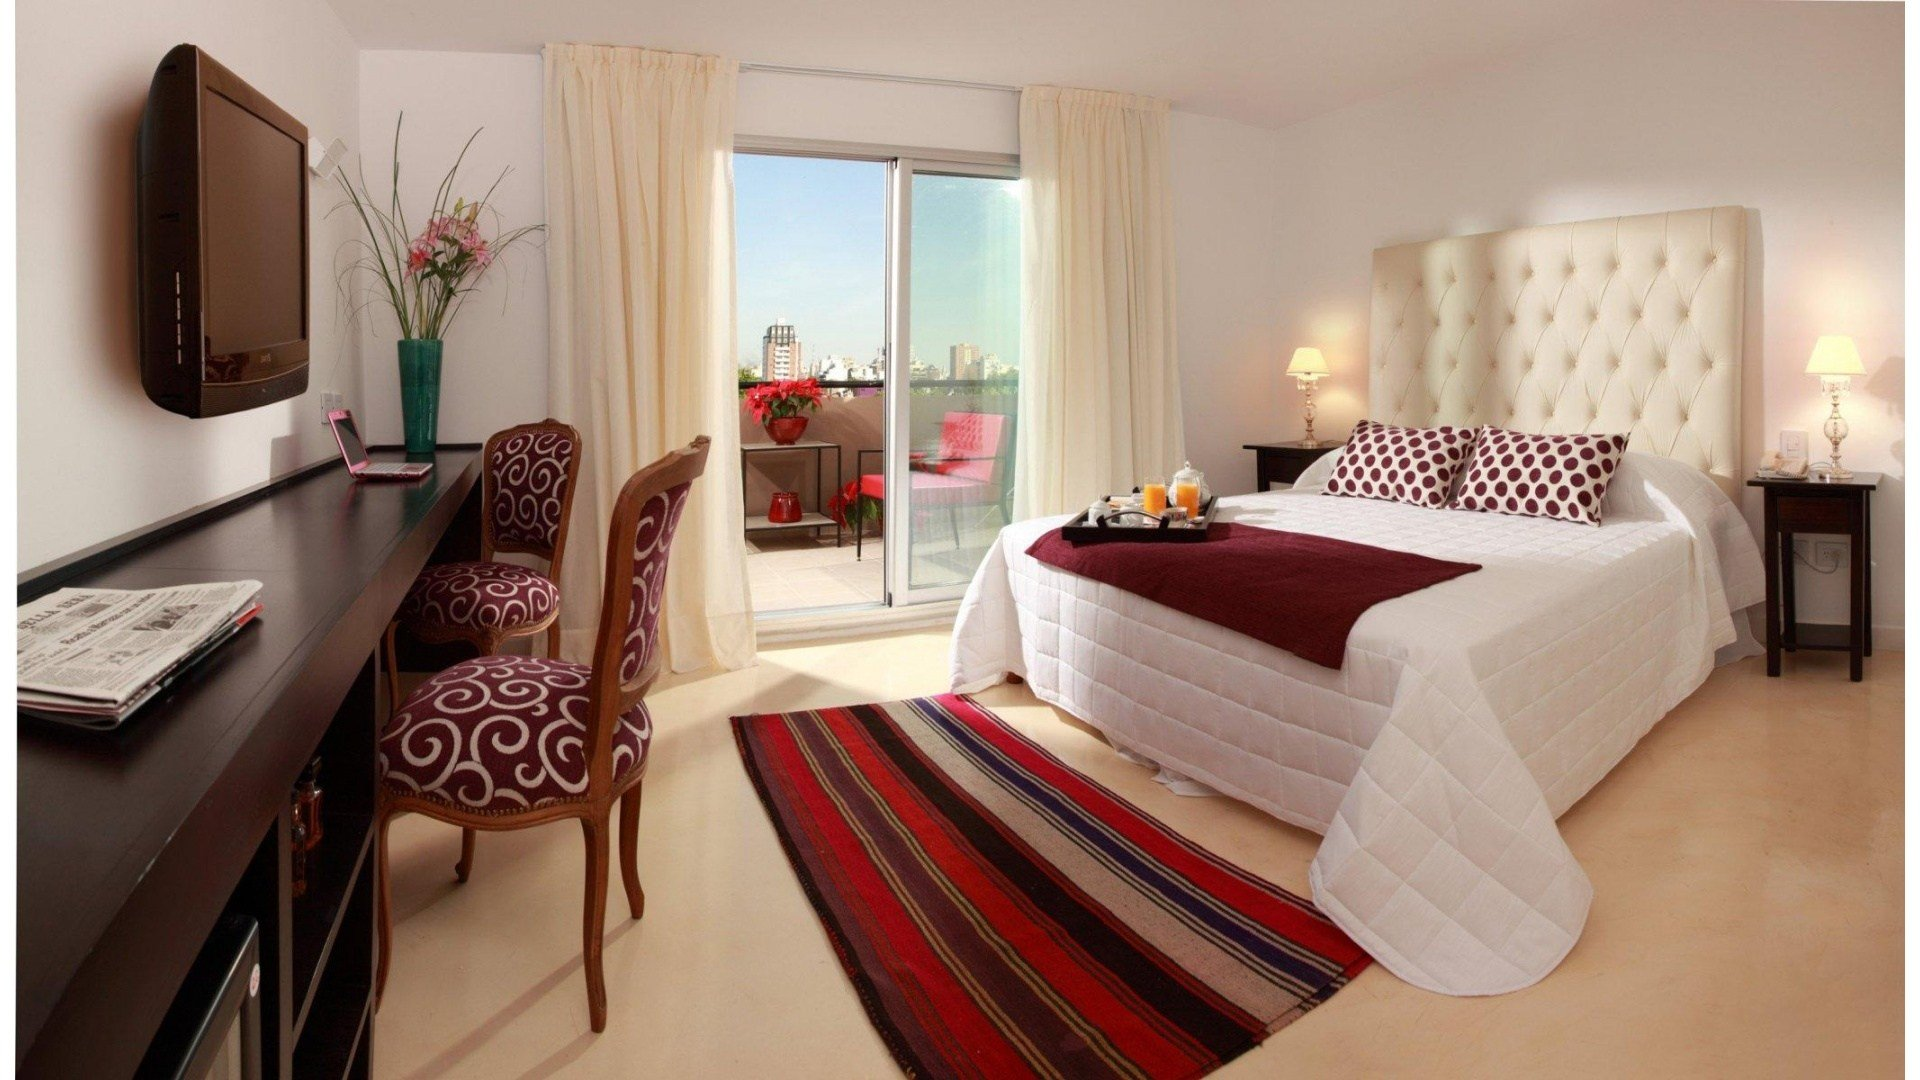 Best Beautiful Bedroom With White Red Pillows Wallpapers With Pictures